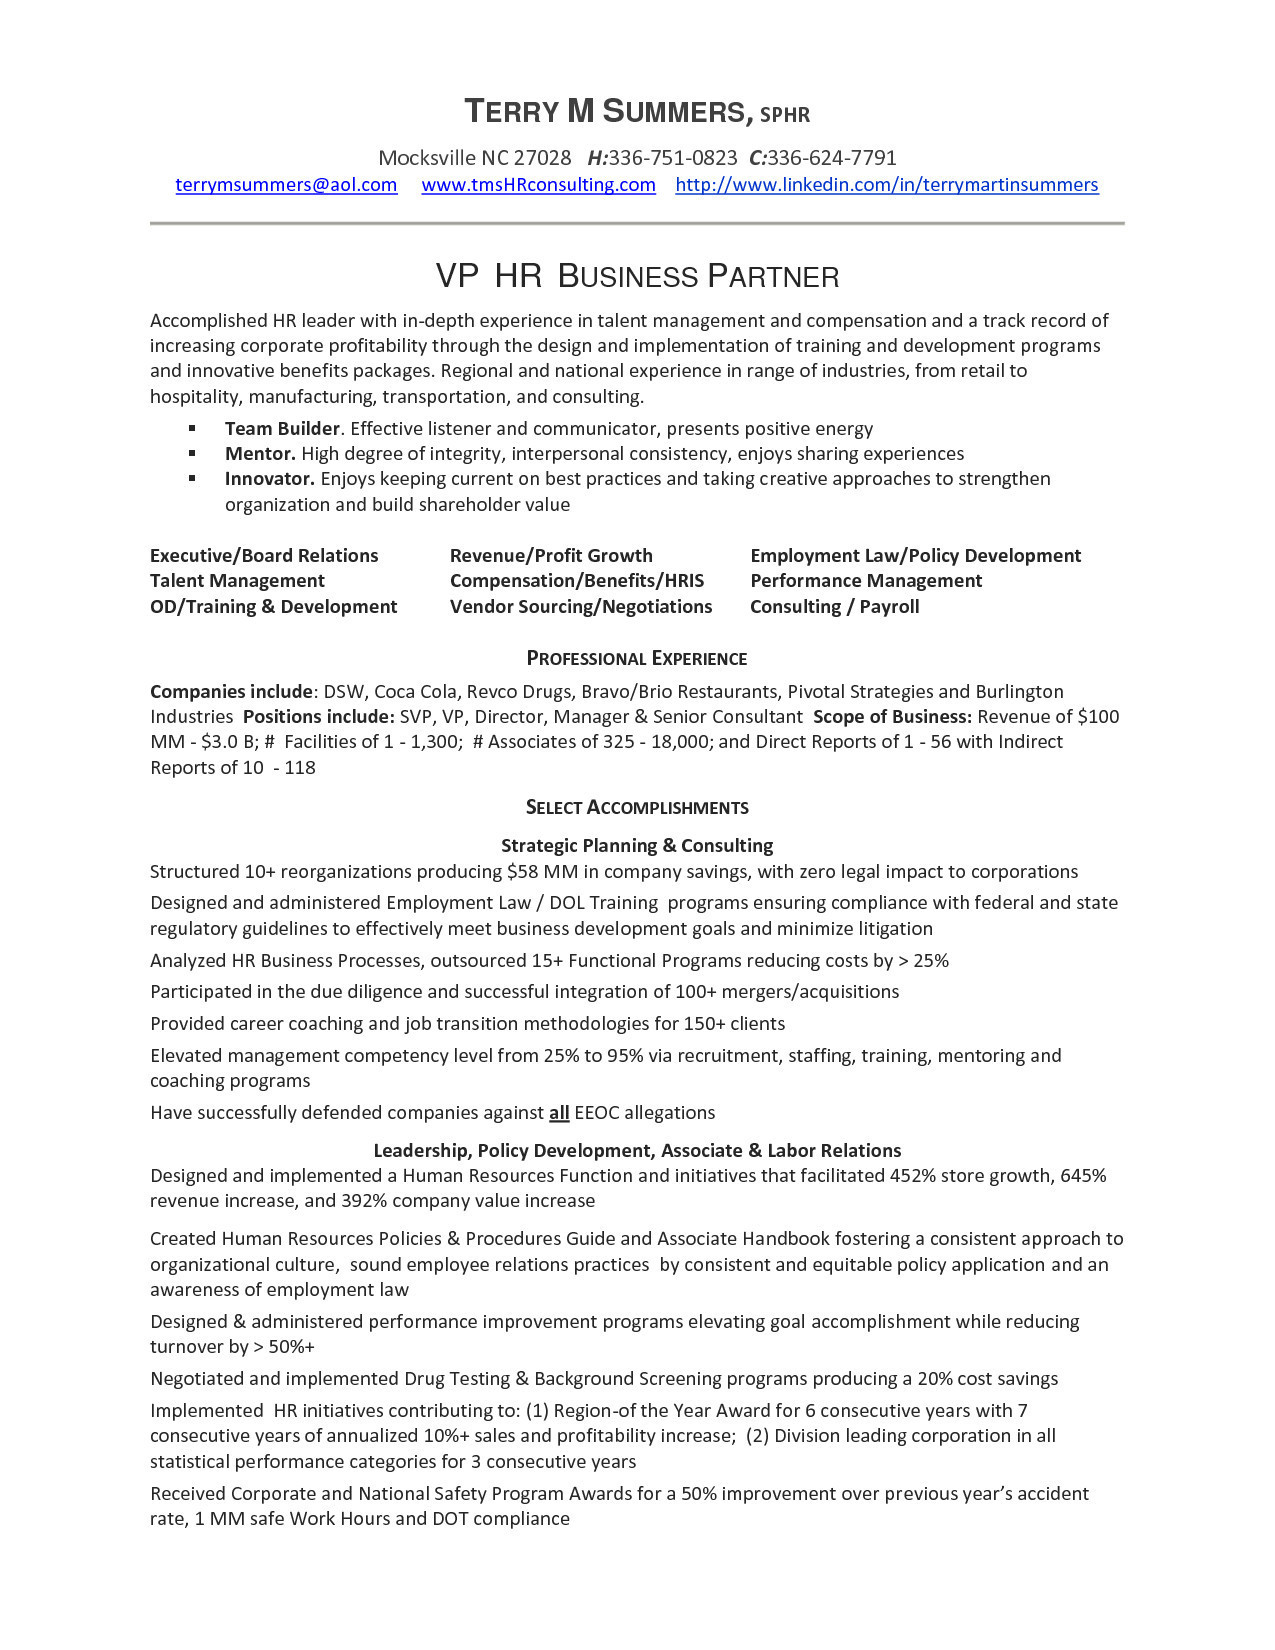 Entry Level Human Resources Resume Sample - Human Resources Sample Resume Best Entry Level Human Resources